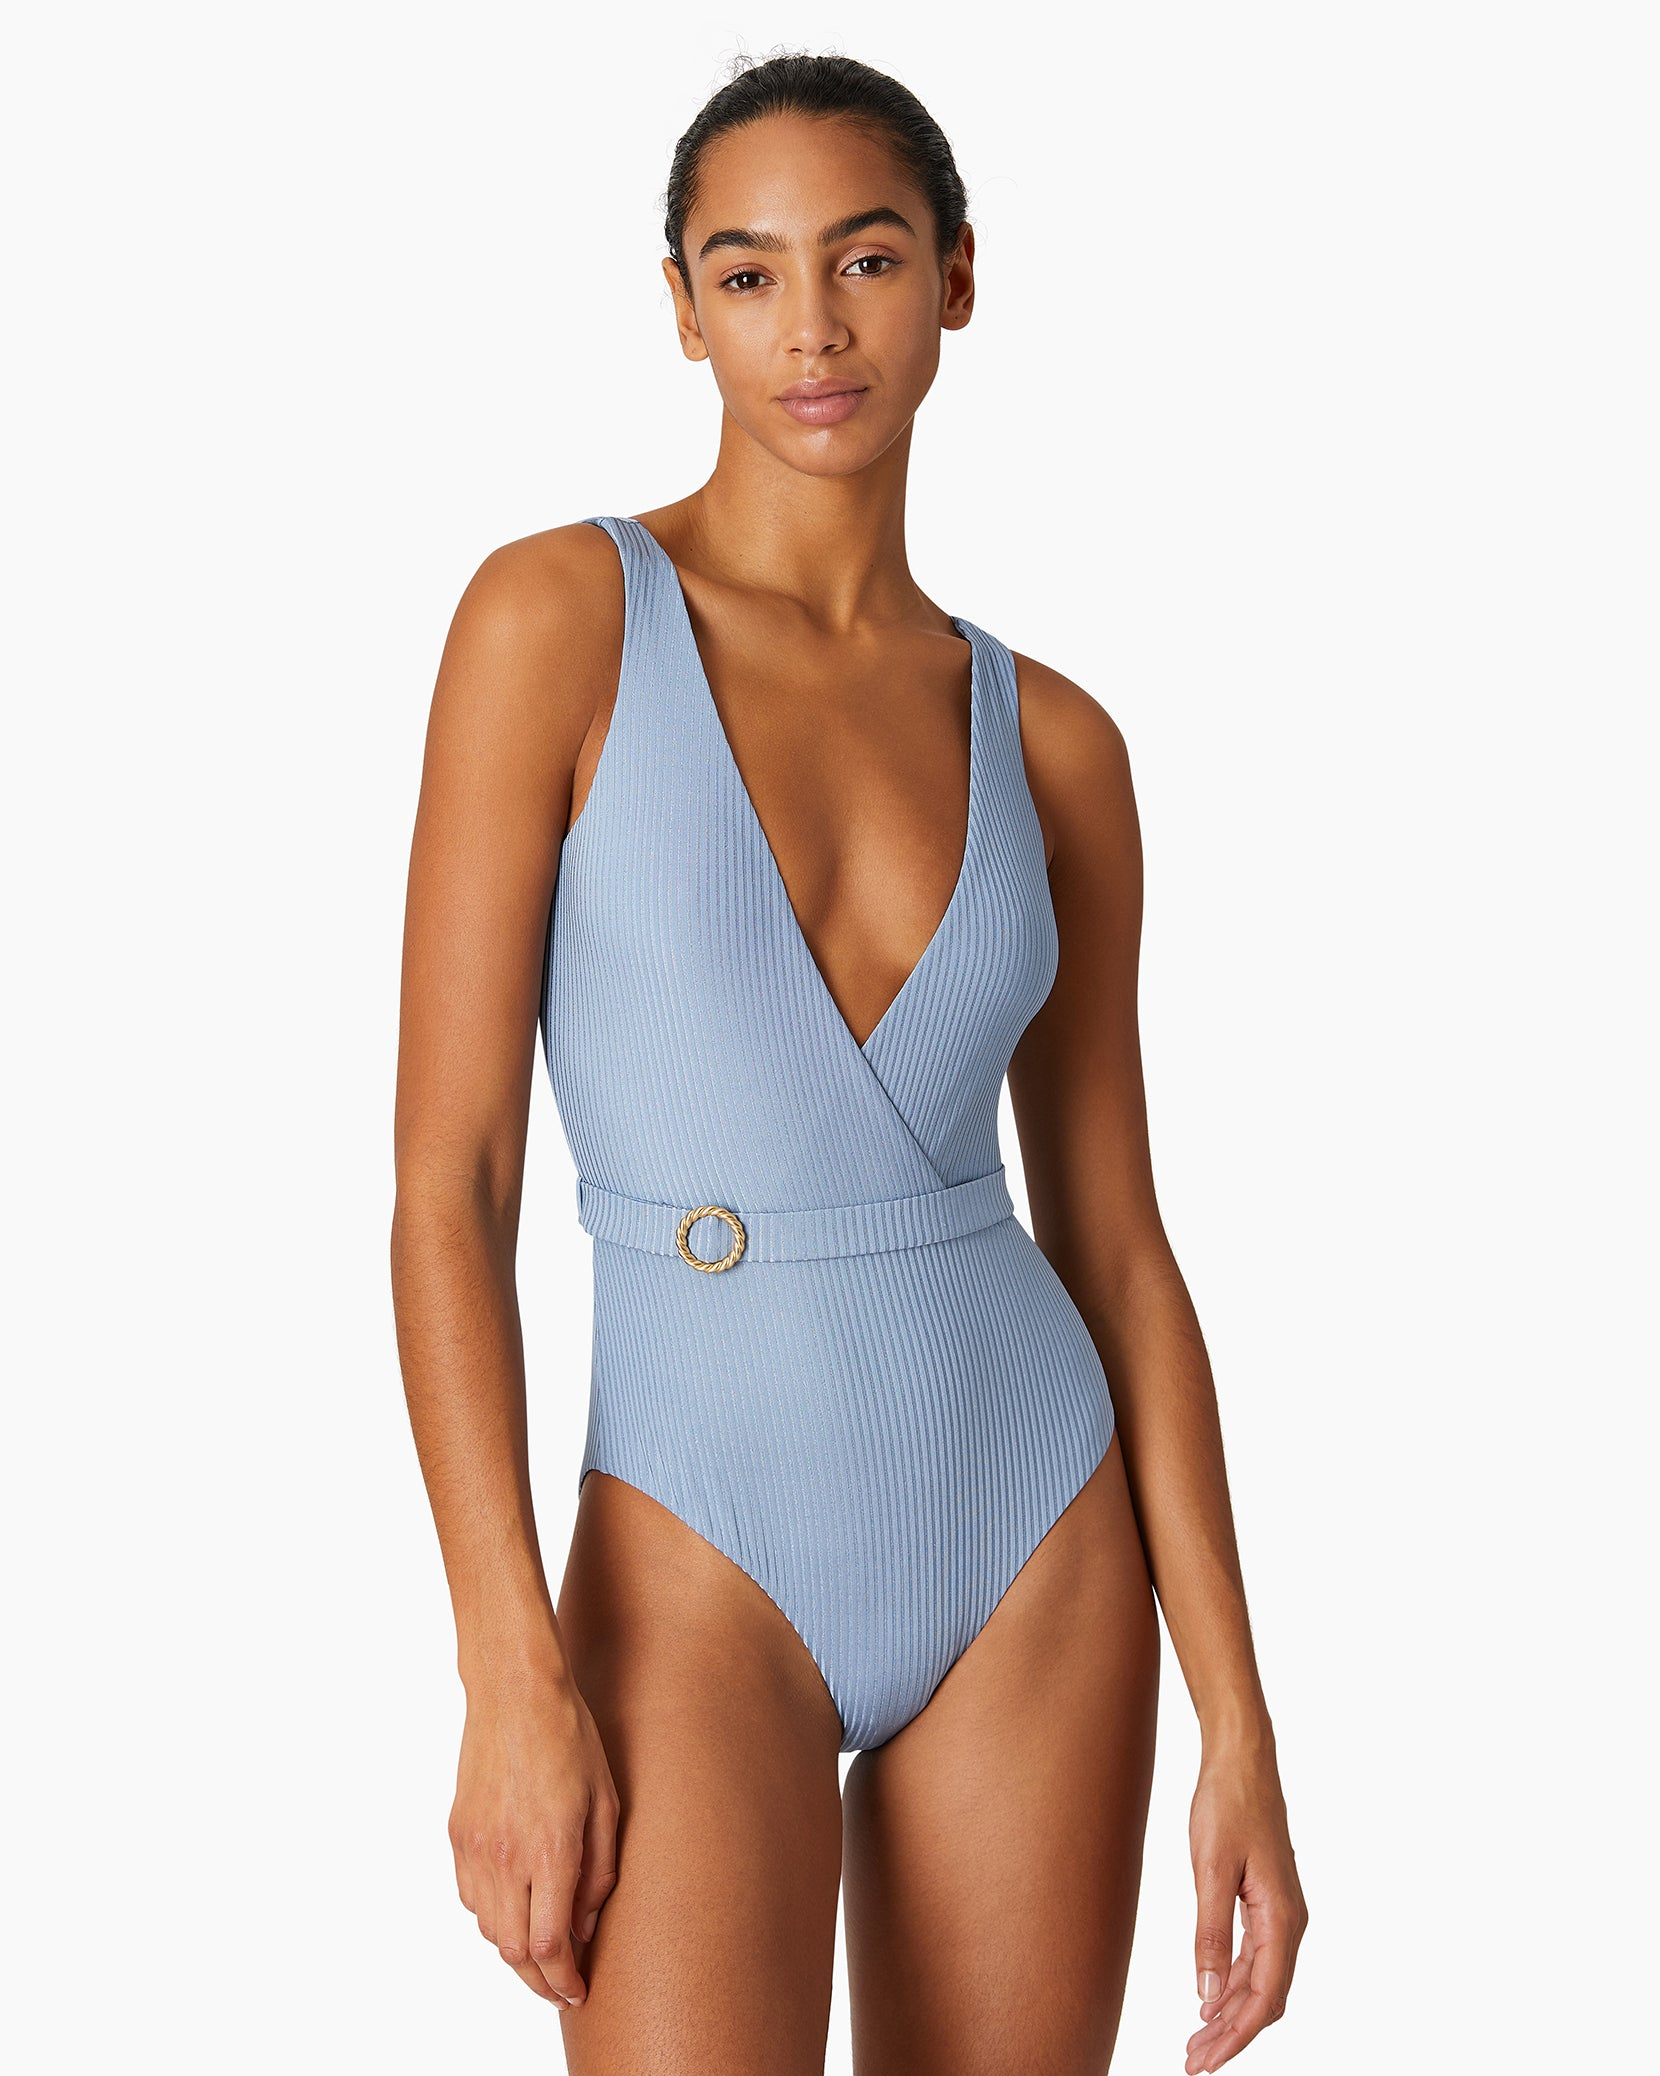 Shimmer Rib Michelle One Piece in Captain Blue - 4 - Onia